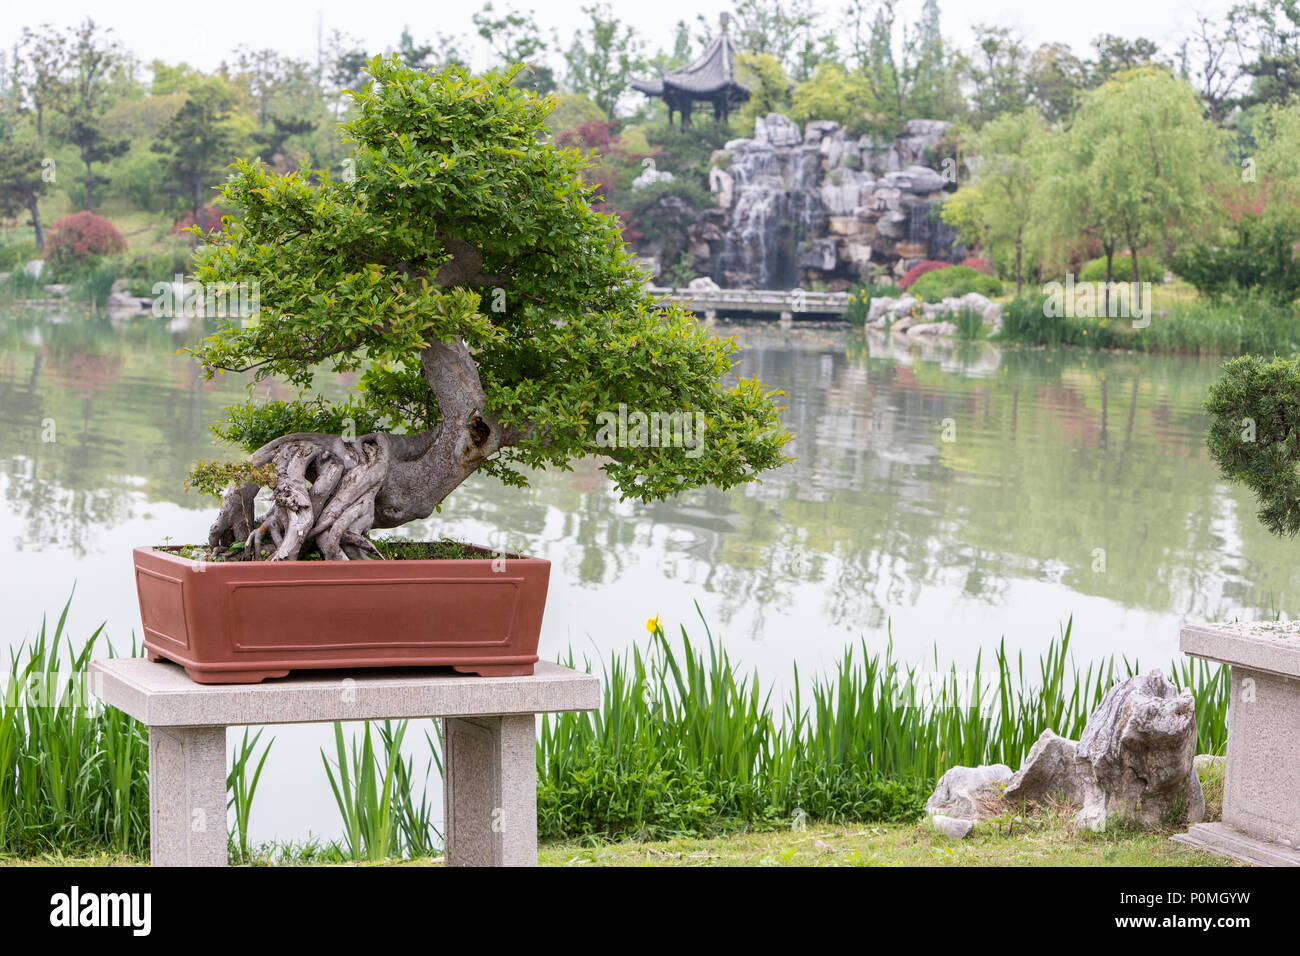 Miniature Tree Garden High Resolution Stock Photography And Images Alamy